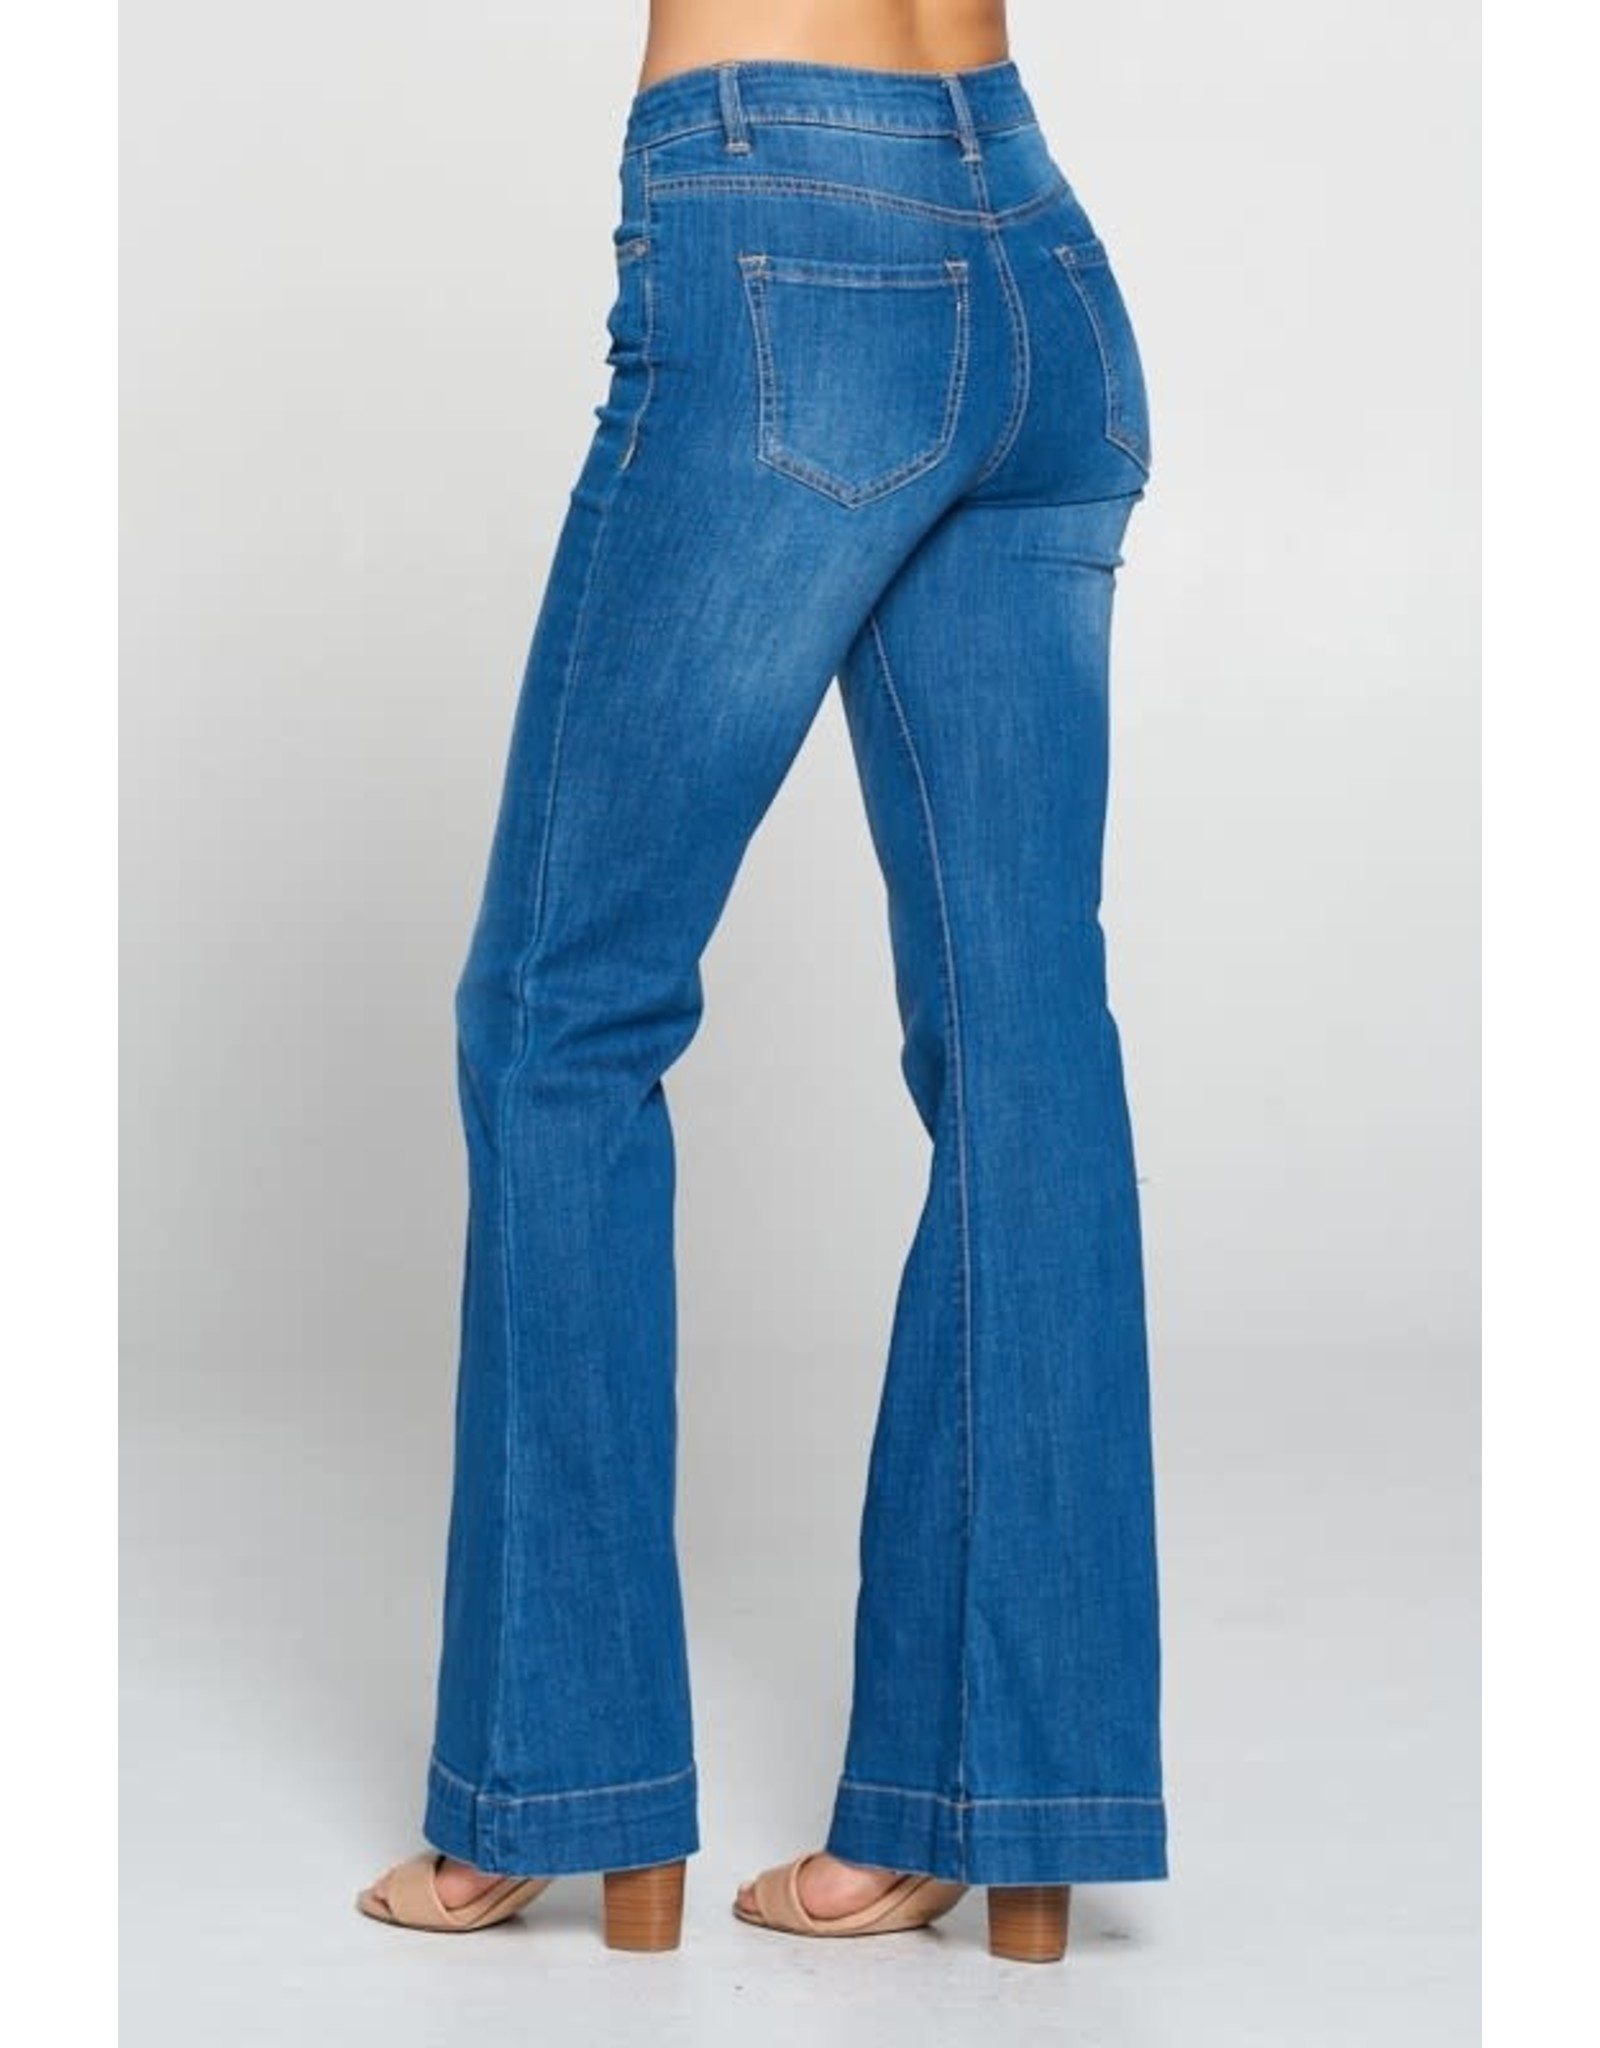 The Ritzy Gypsy BRISTOW High Wasited Gentle Flare Jeans